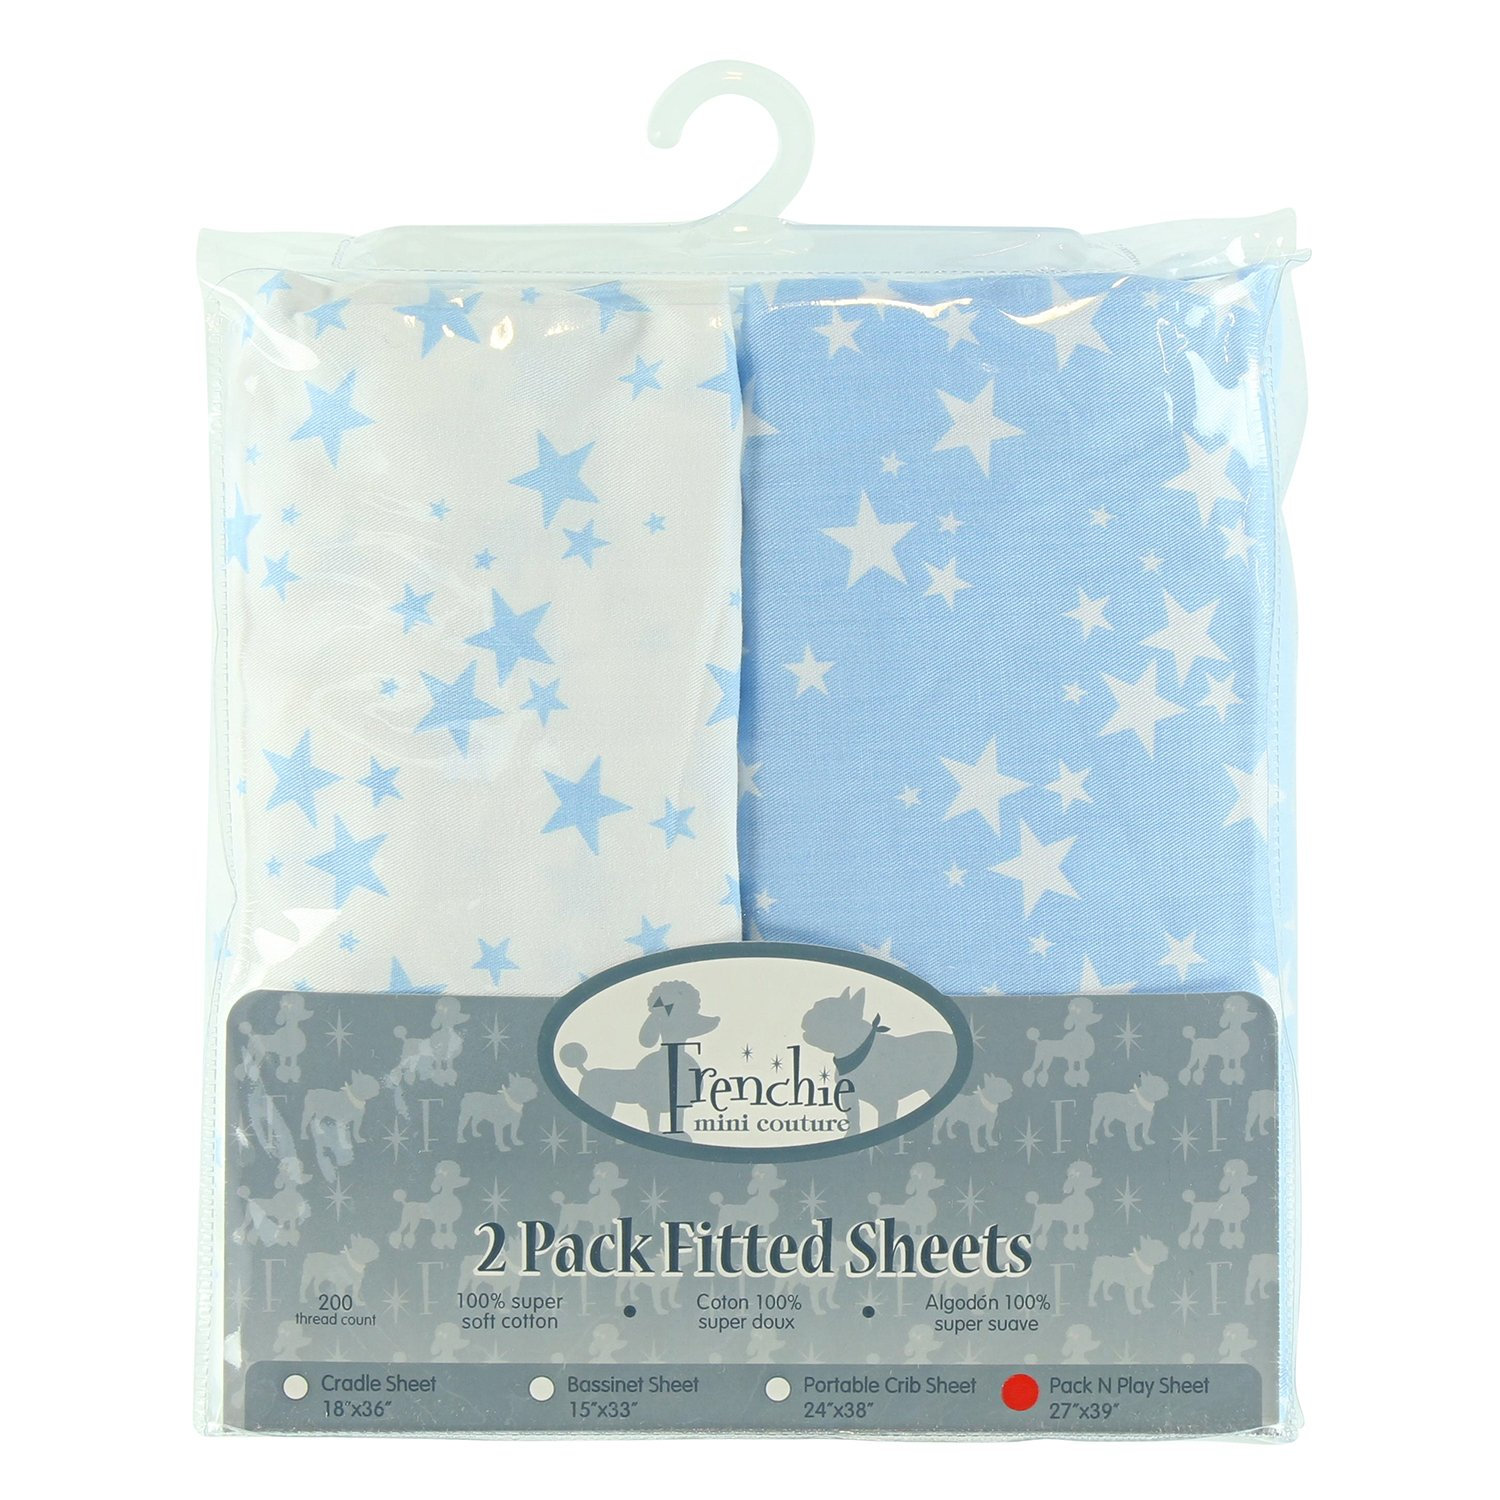 2 Pack Fitted Pack N Play Sheets, Blue Stars, Frenchie Mini Couture